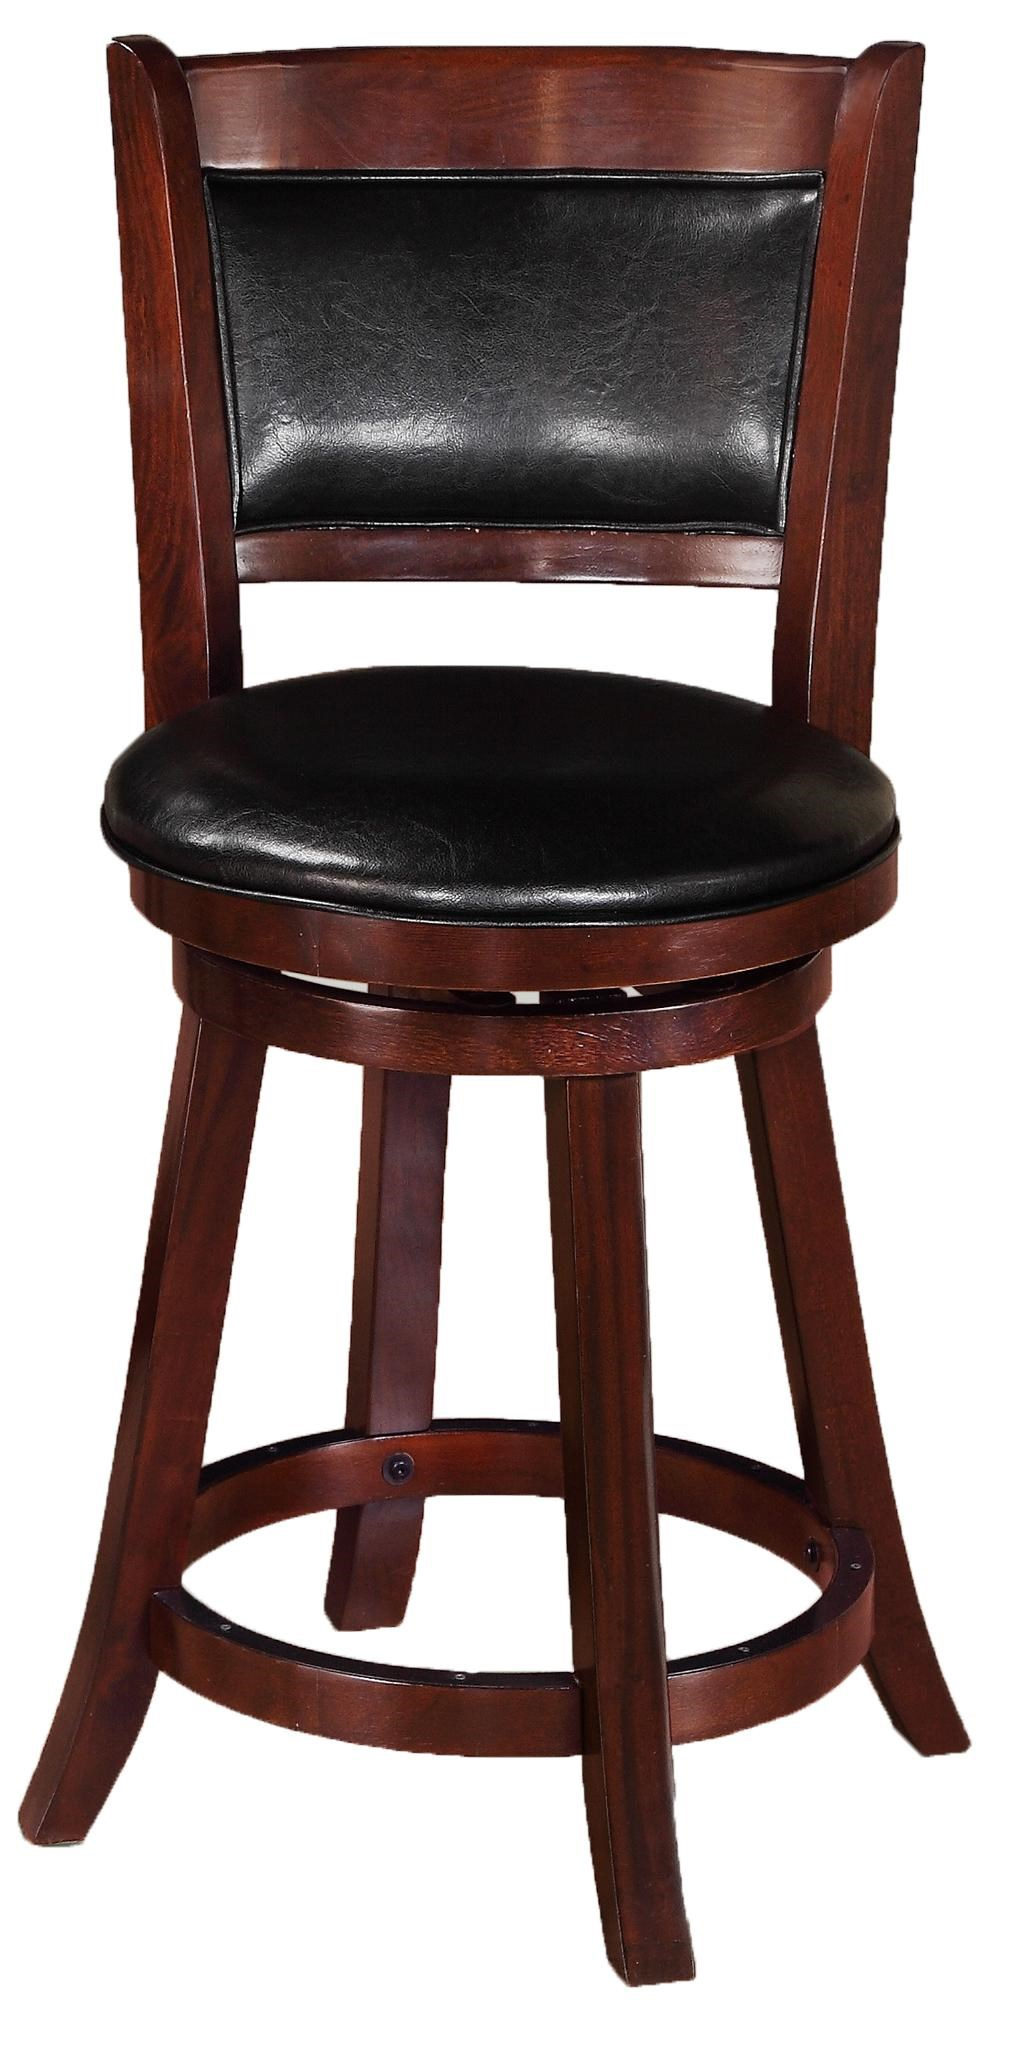 Table And Bar Stools Bar Stools Transitional Upholstered Low Swivel Chair By Crown Mark At Dunk Bright Furniture